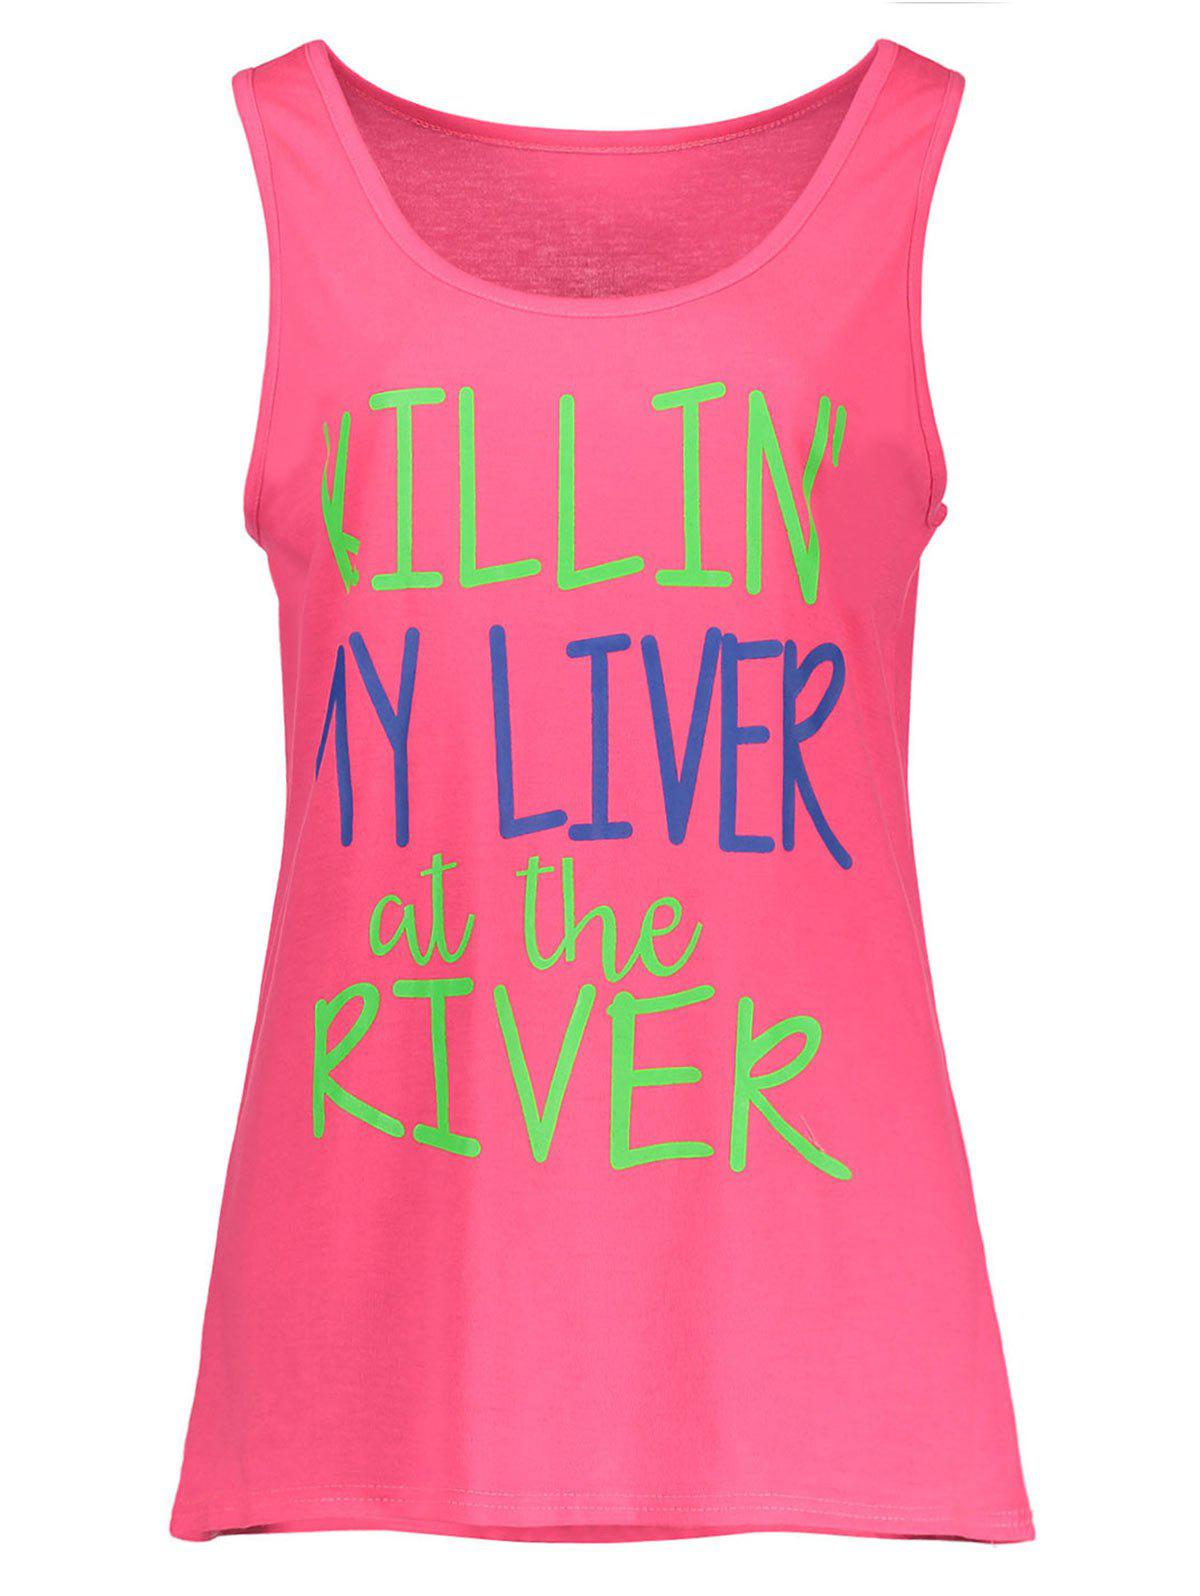 Buy My Liver At The River Graphic Tank Top